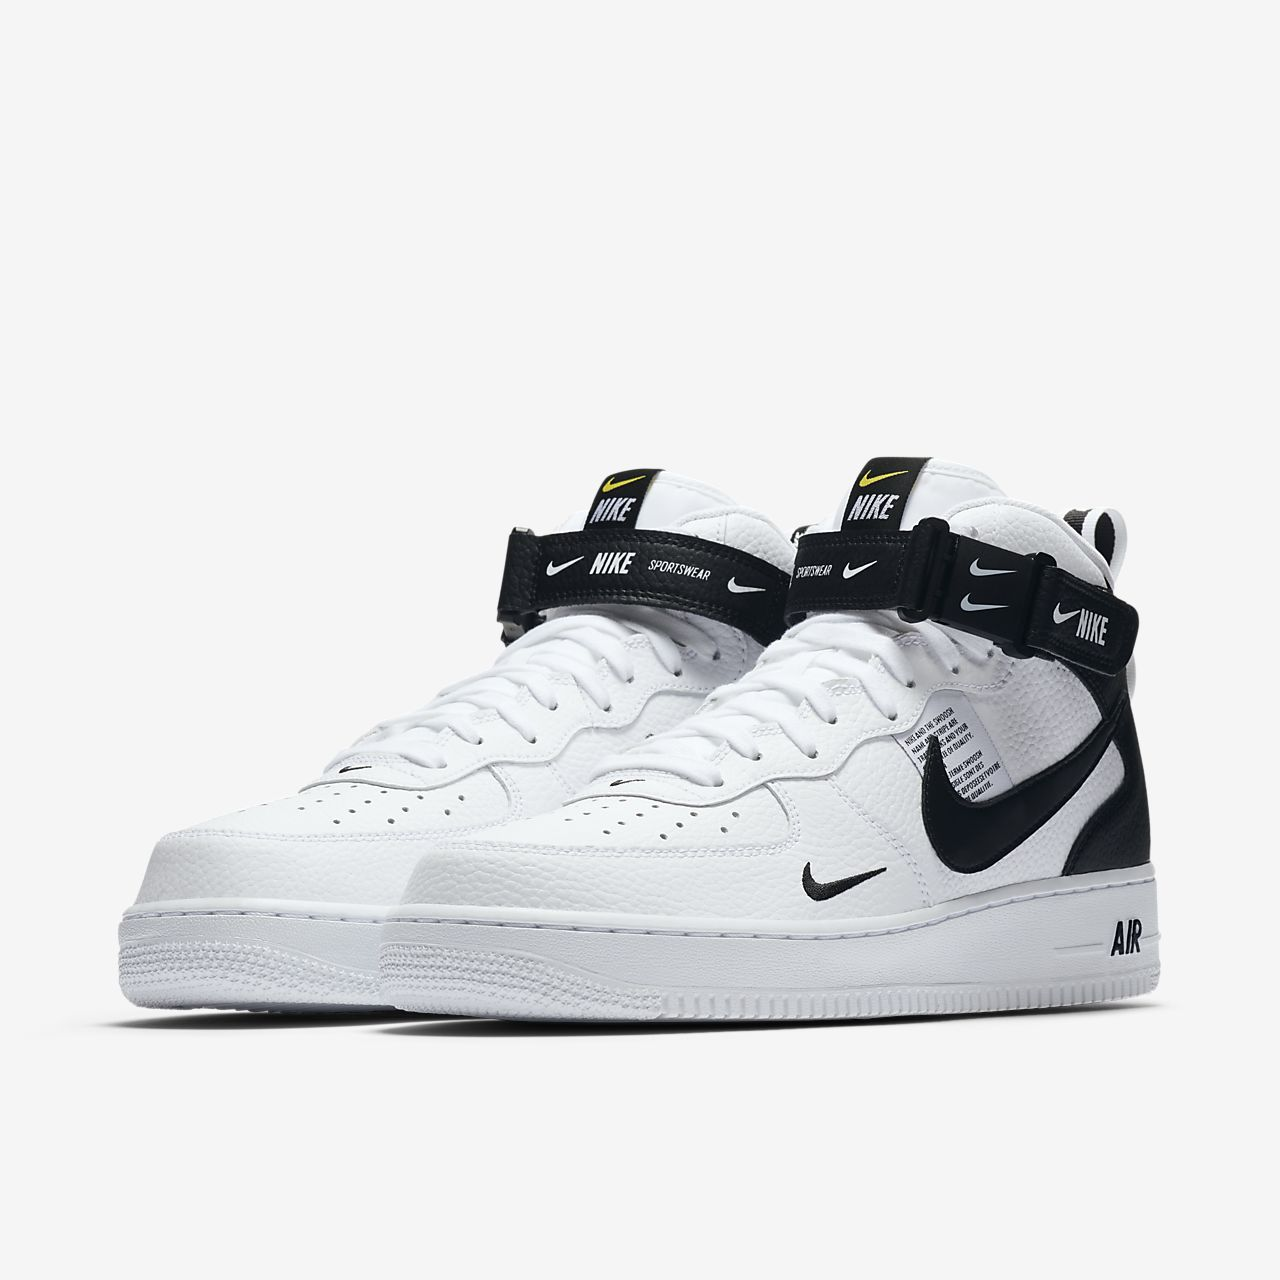 Scarpa Nike Air Force 1 07 Mid LV8 - Uomo